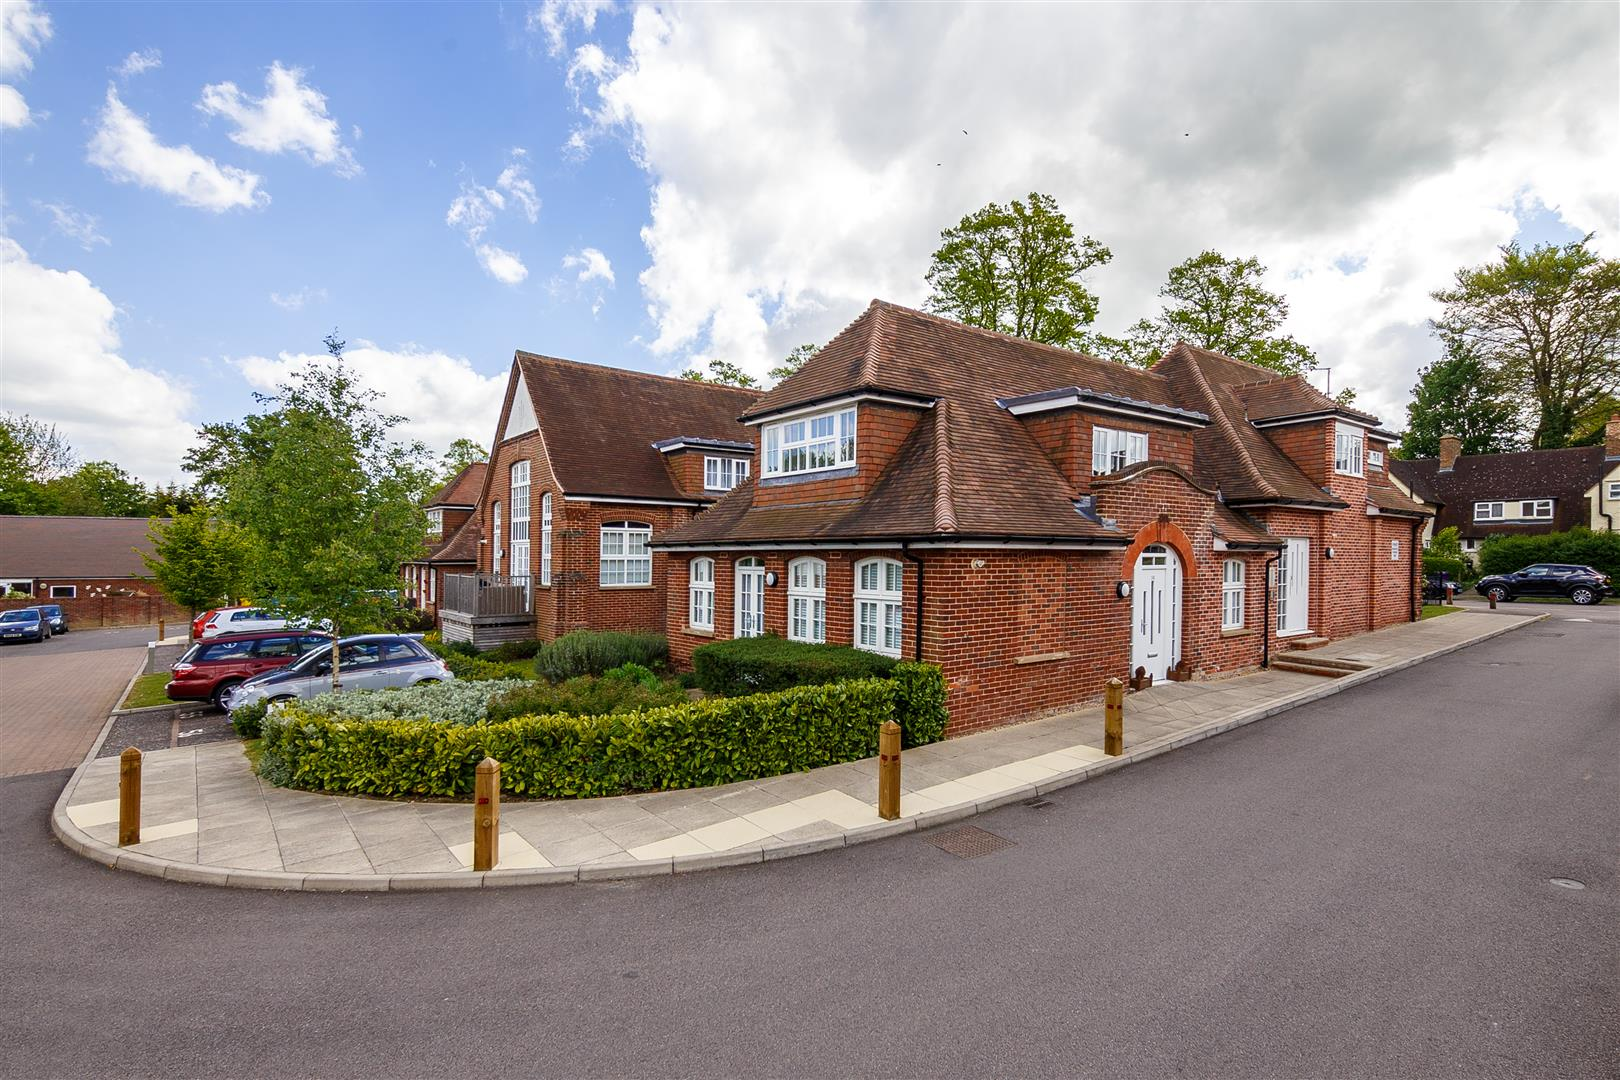 Old westbury letchworth garden city sg 3 bed apartment sg6 3nb 325 000 for sale for Western state bank garden city